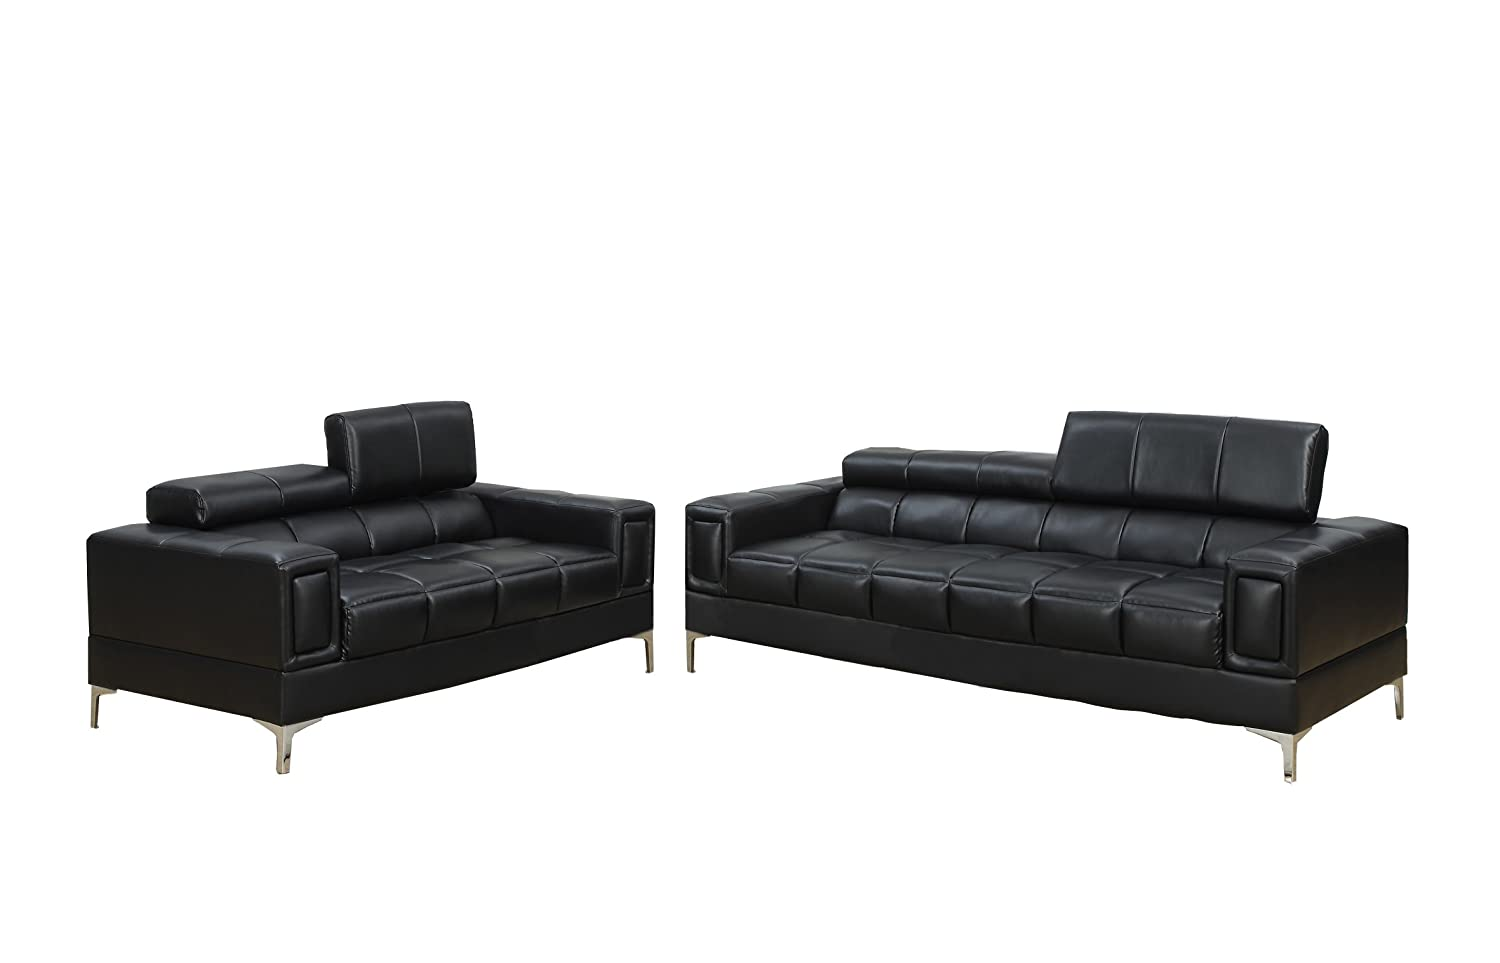 Poundex Bobkona Sierra Bonded Leather 2 Piece Sofa and Loveseat Set - Black